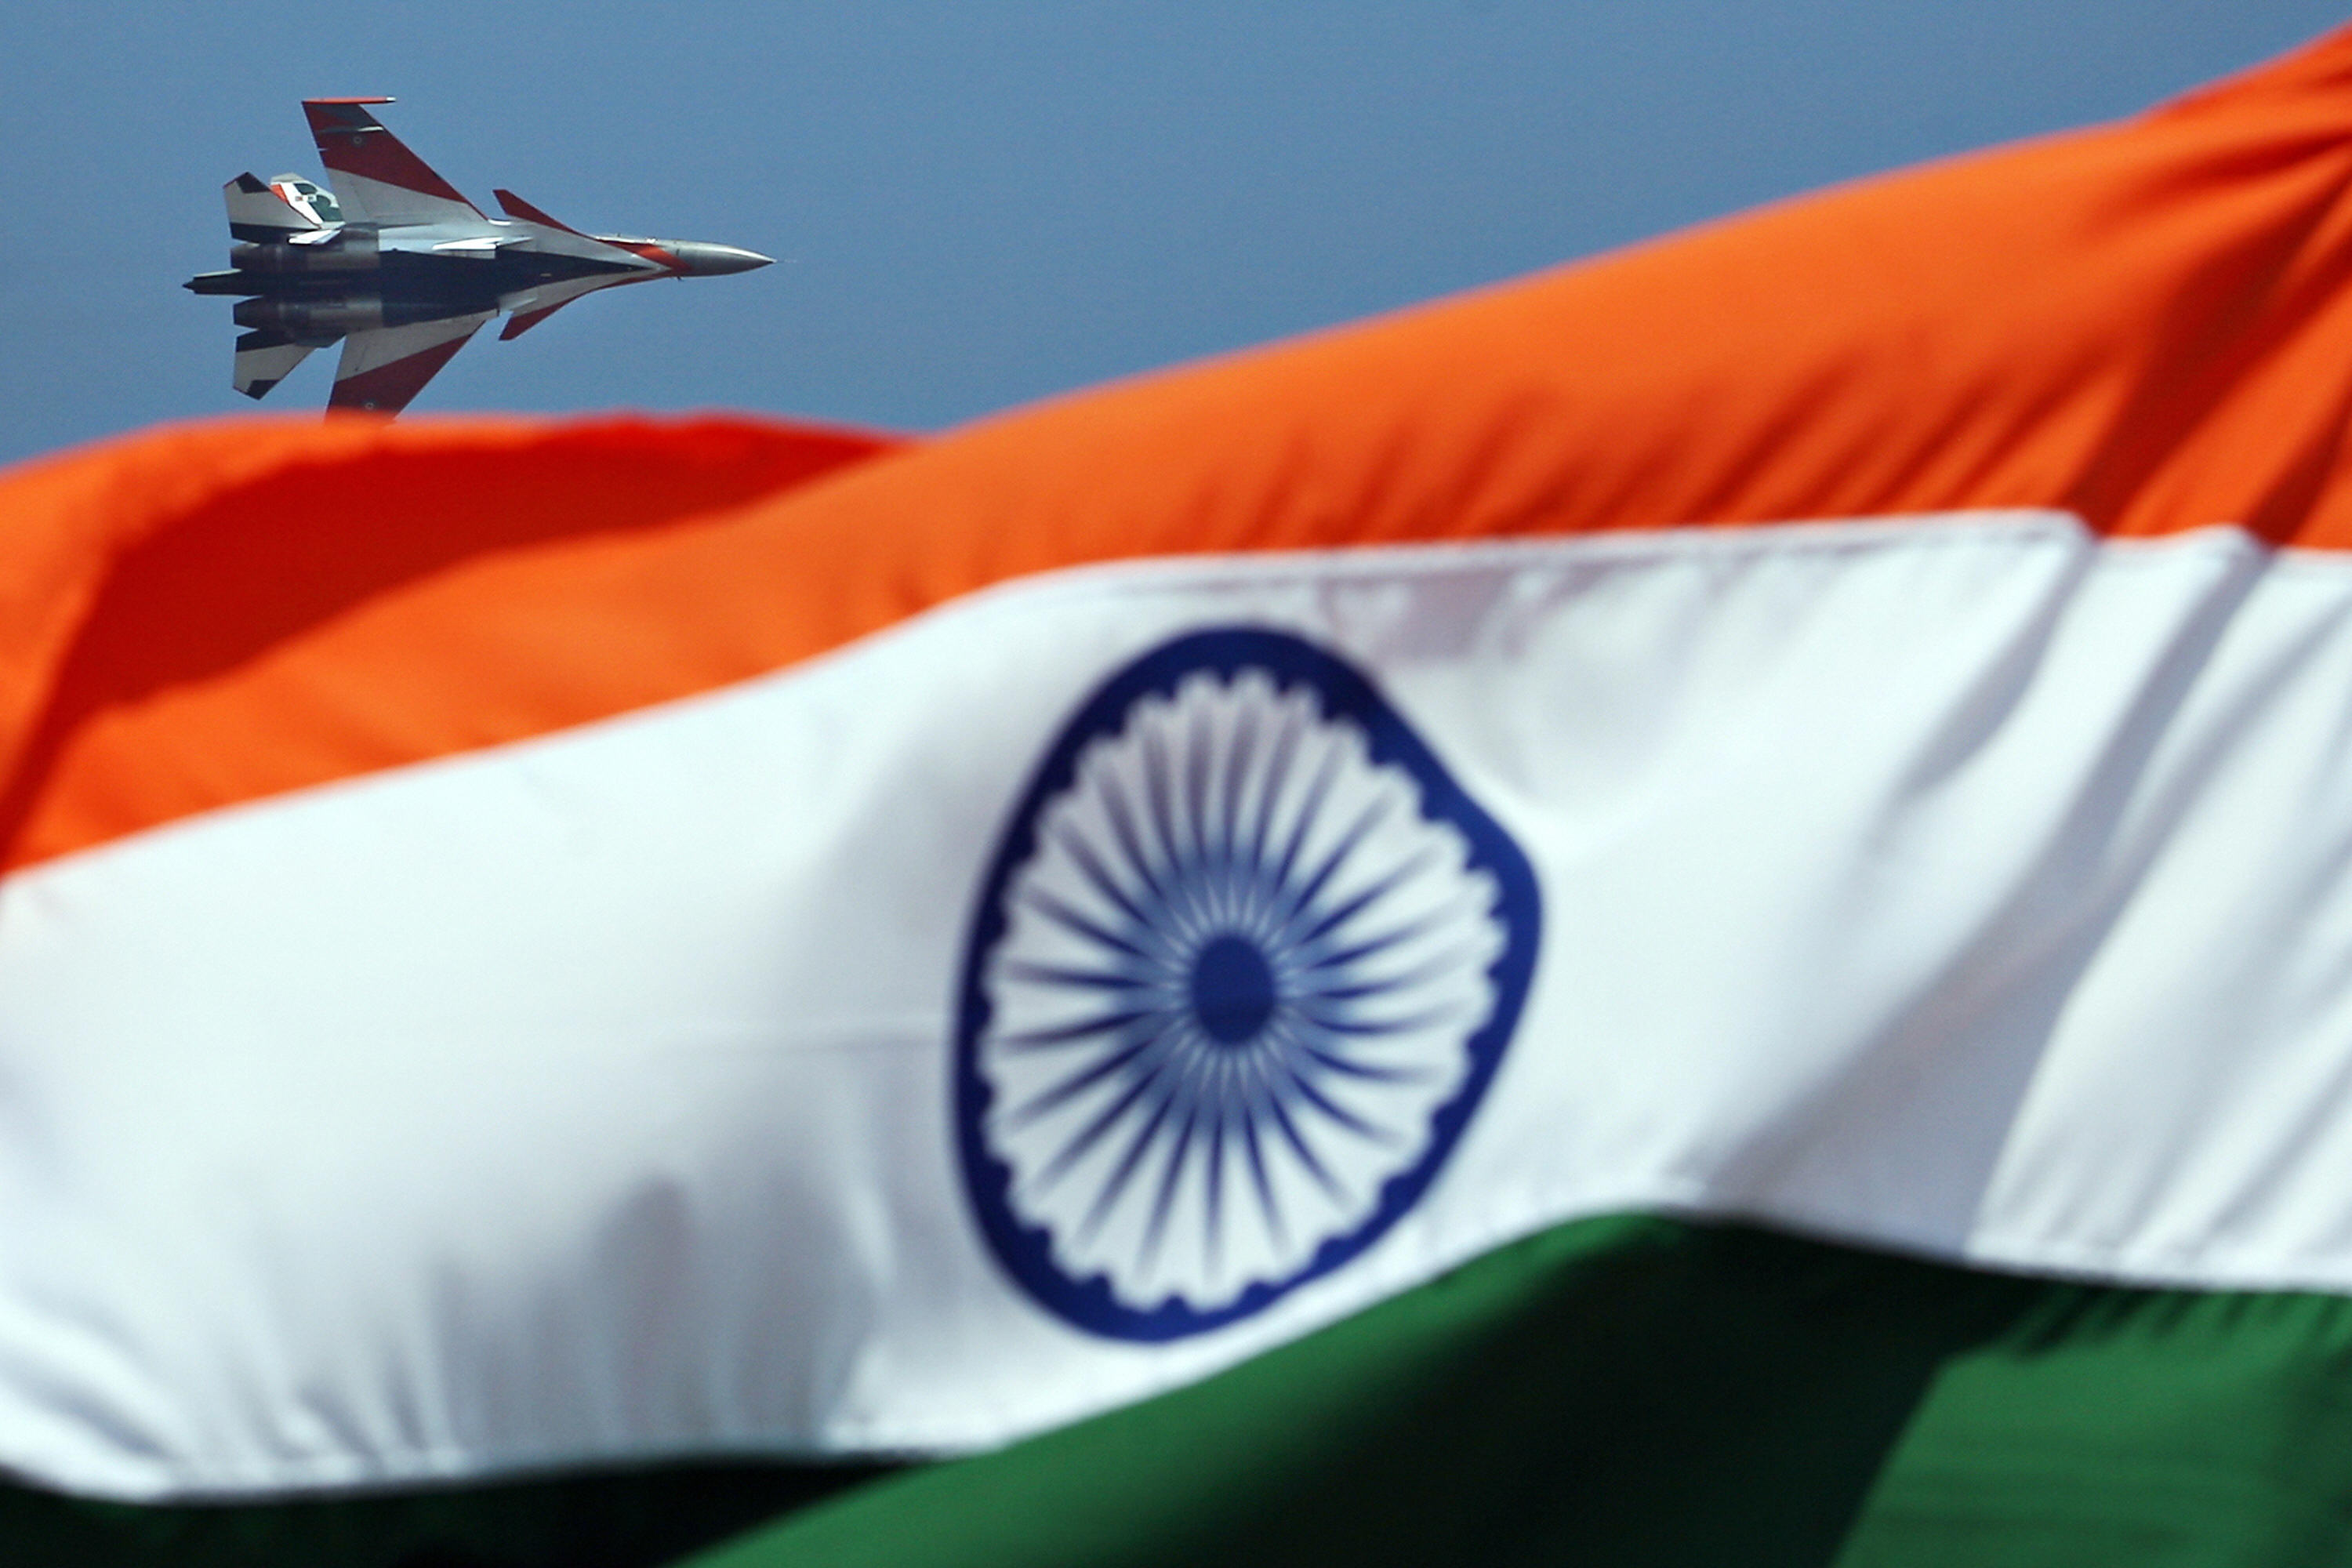 Talks underway for India's entry into Wassenaar Arrangement